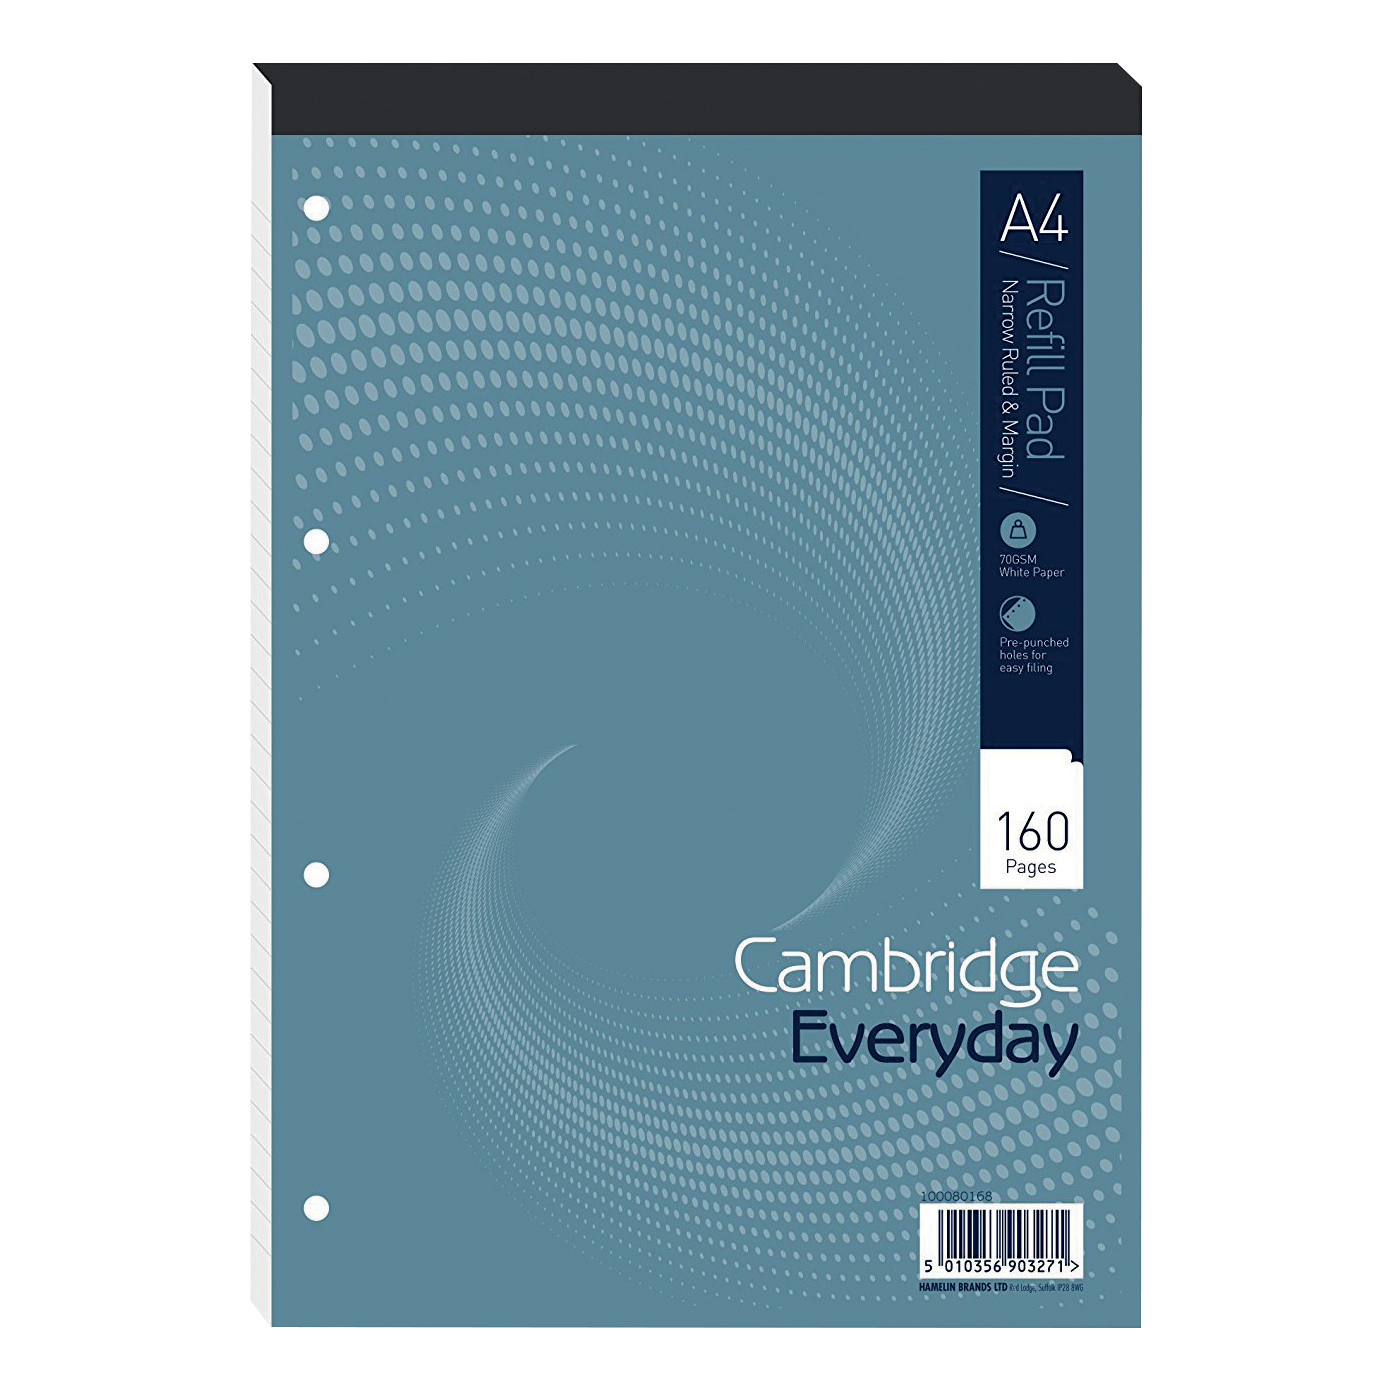 Cambridge Refill Pad Hbd 70gsm Narrow Ruled Margin Punched 4 Holes 160pp A4 Blue Ref 100080168 [Pack 5]